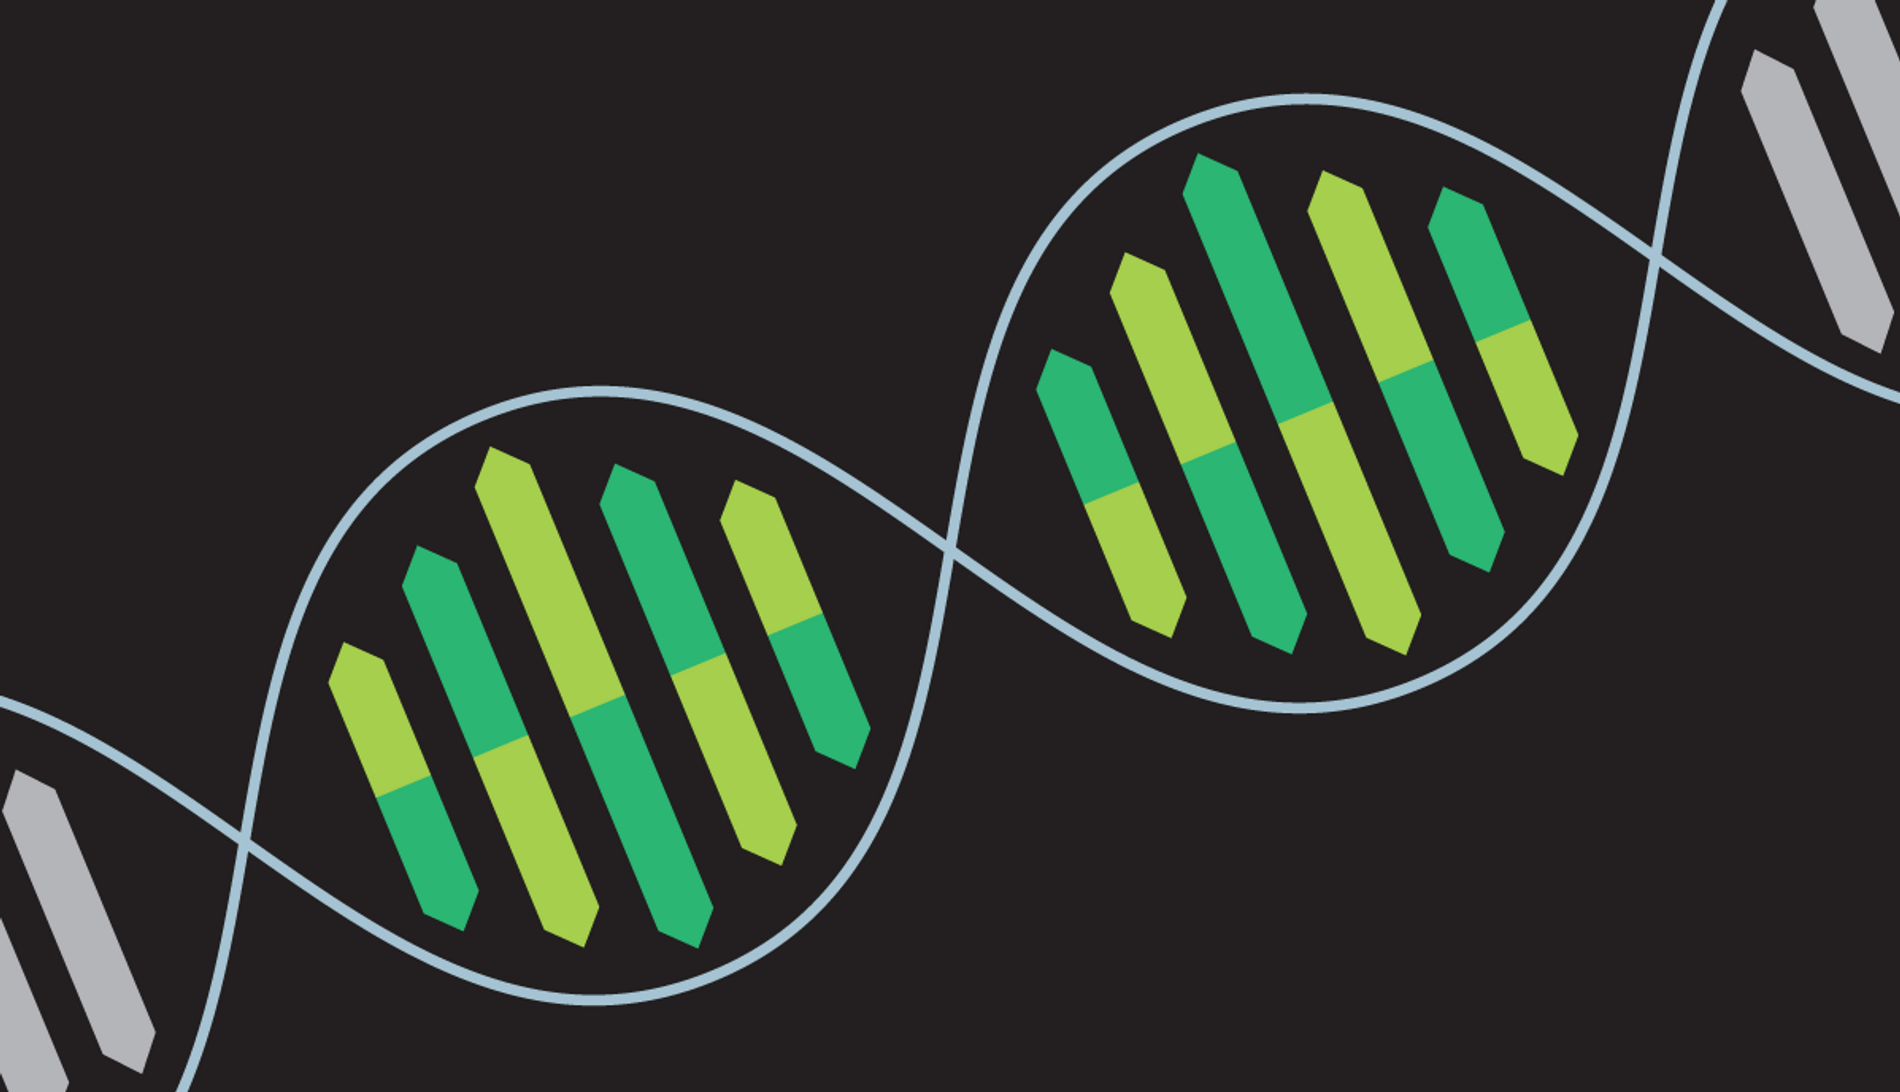 Should gene editing be performed on human embryos?